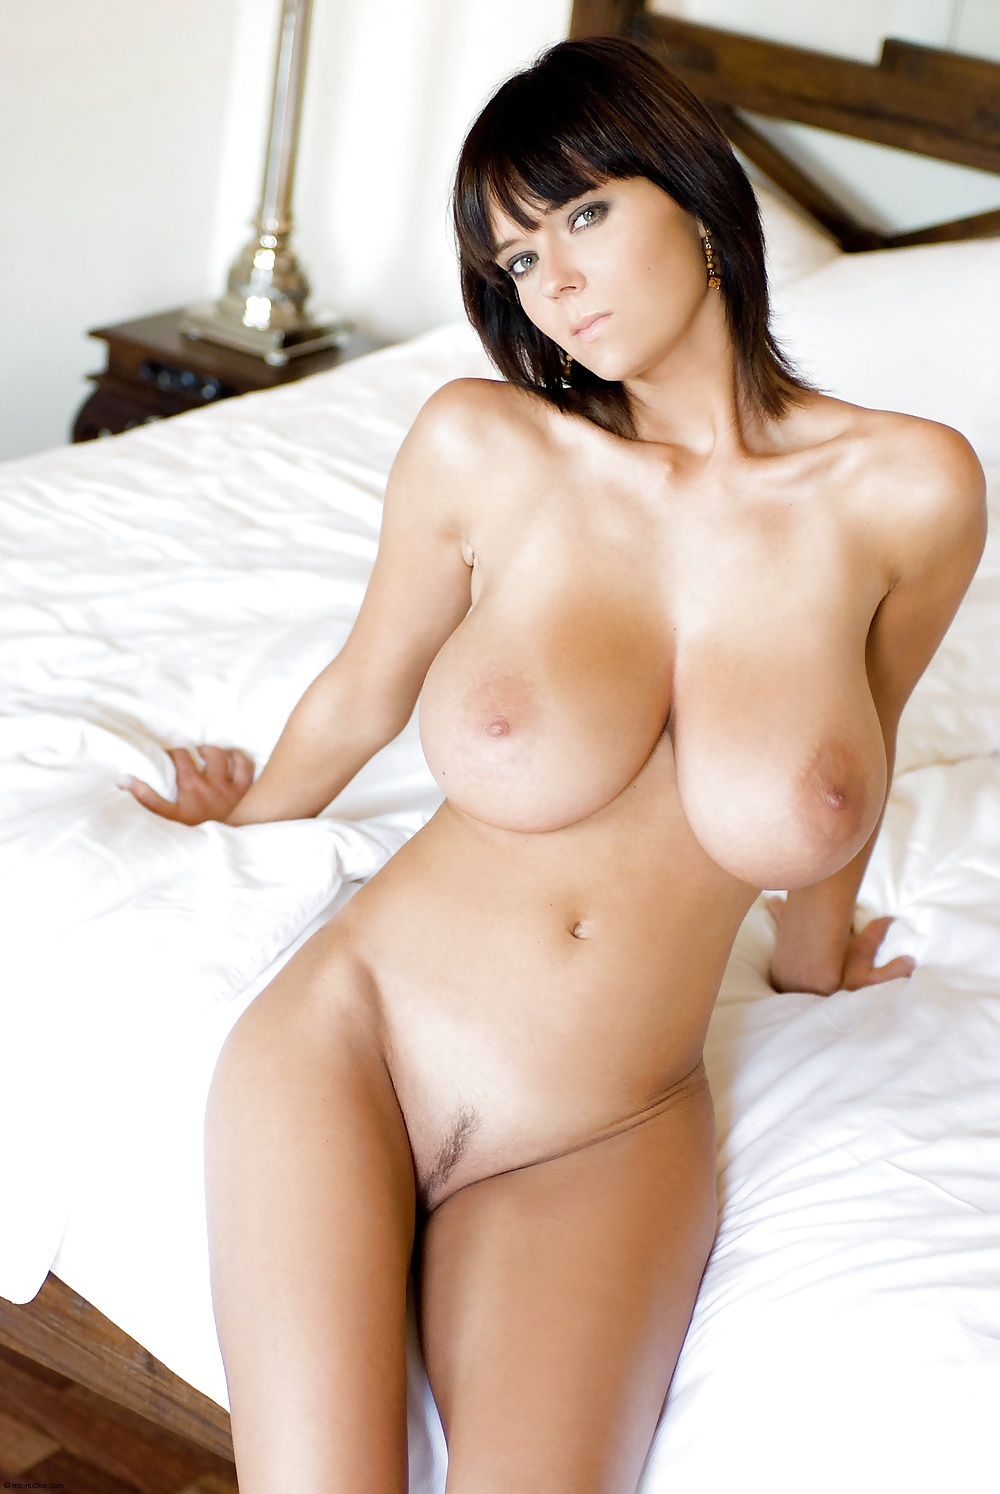 Naked Women Playing With Their Big Boobs